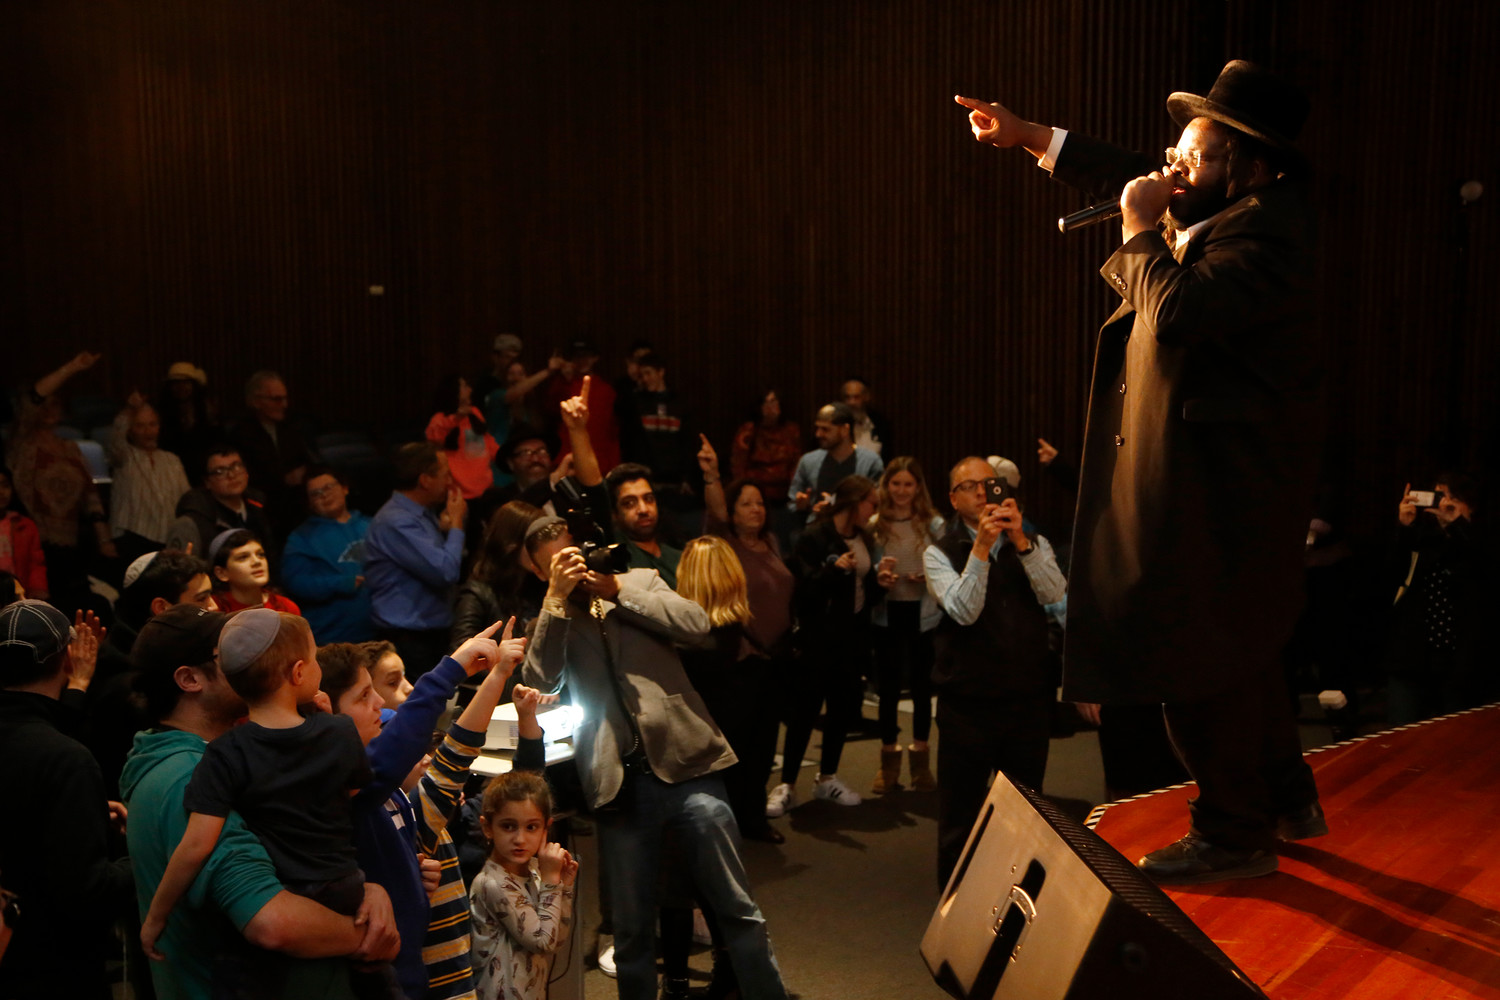 Nissim Black, a Hasidic rapper from Seattle who converted to Judaism in 2012, performed at Long Beach High School on Feb. 26 for a Teen Unity concert that commemorated the Parkland, Florida shooting victims.